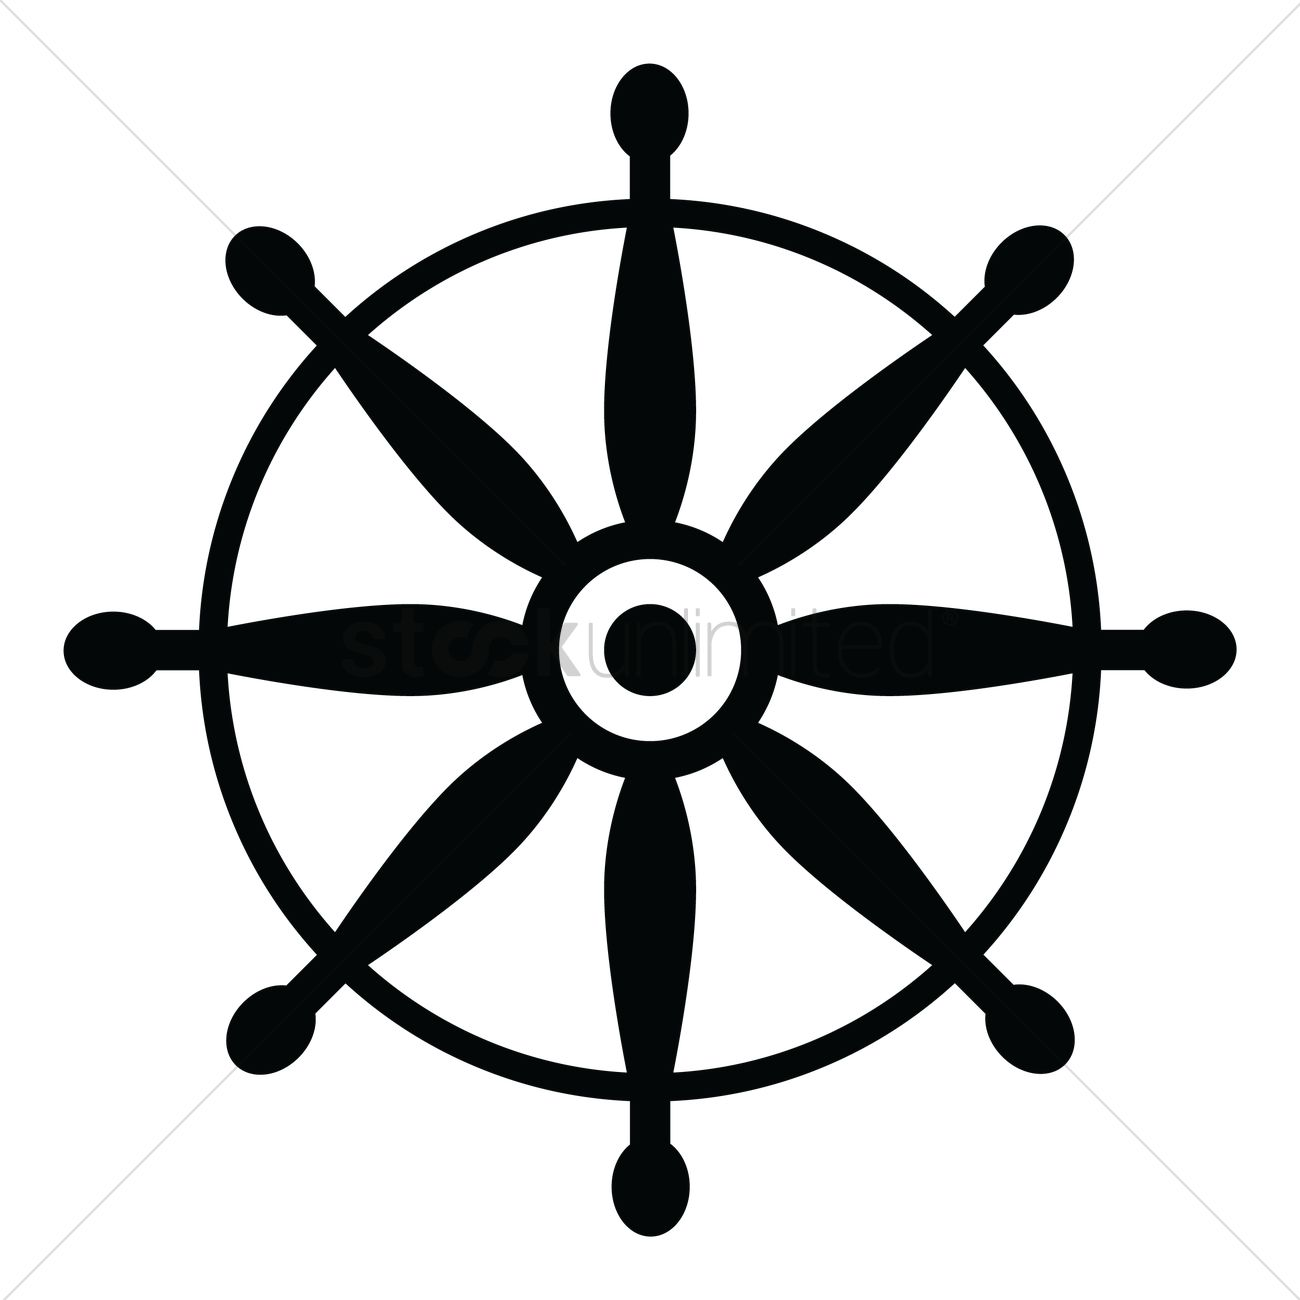 ship steering wheel vector image 1522155 stockunlimited ship steering wheel vector image